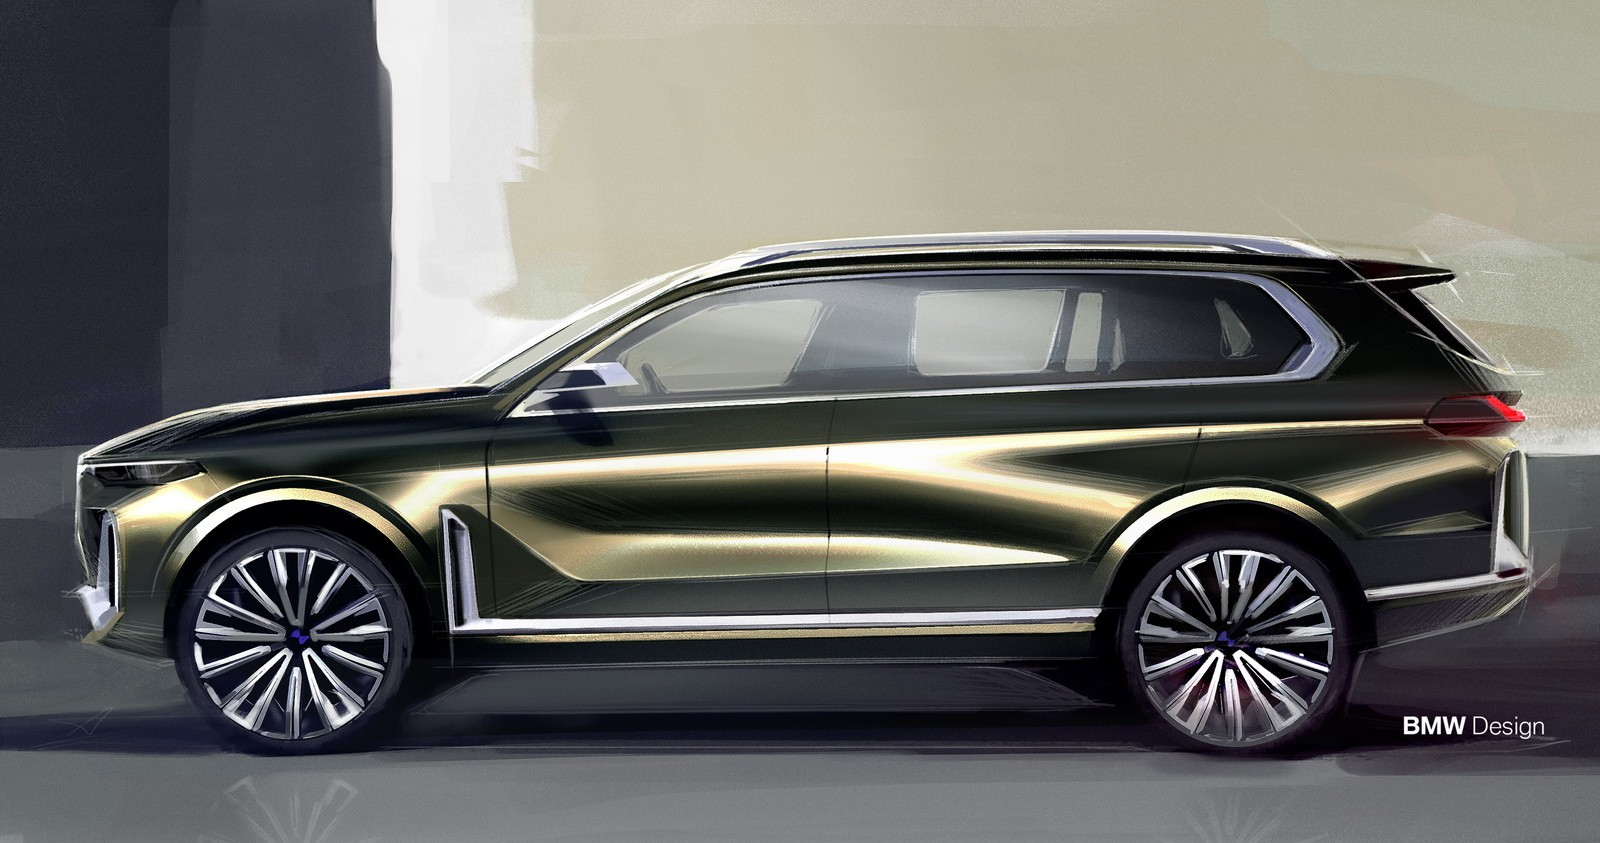 hight resolution of  bmw concept x7 iperformance 2019 bmw x7 preview